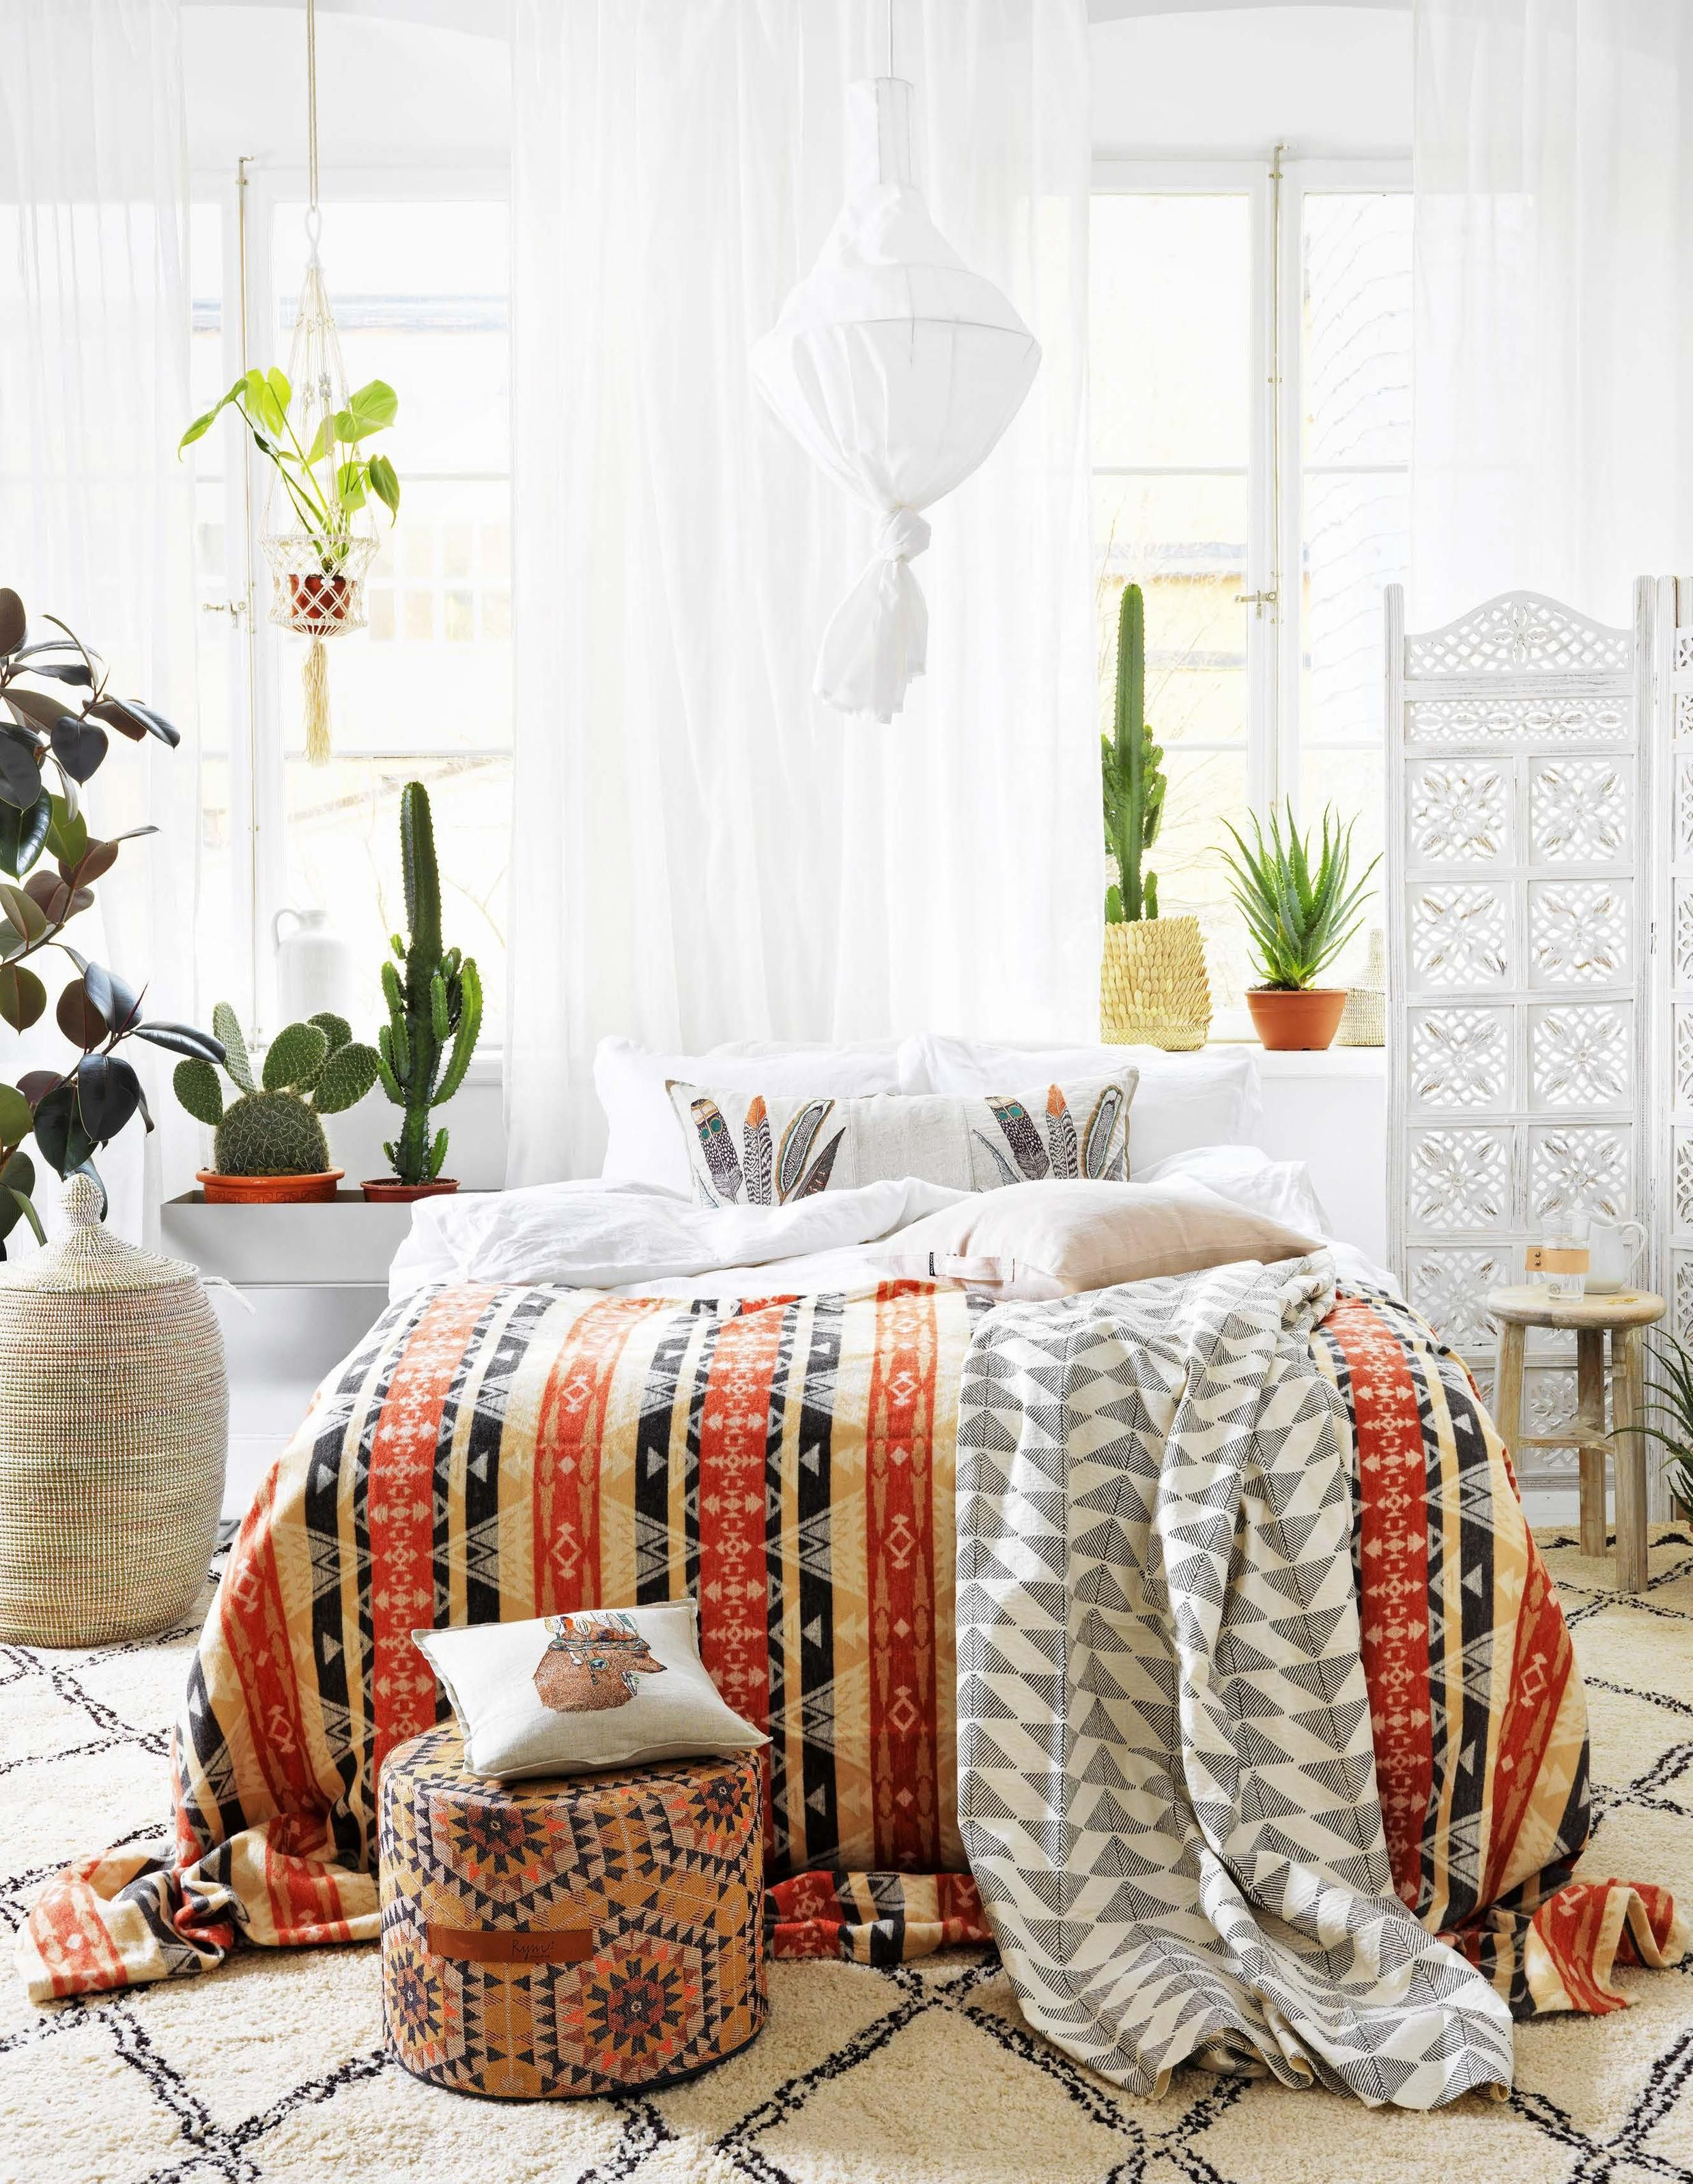 Boho Bedroom A Scandi Boho Bedroom With Colorful Plaid Home Diy Home